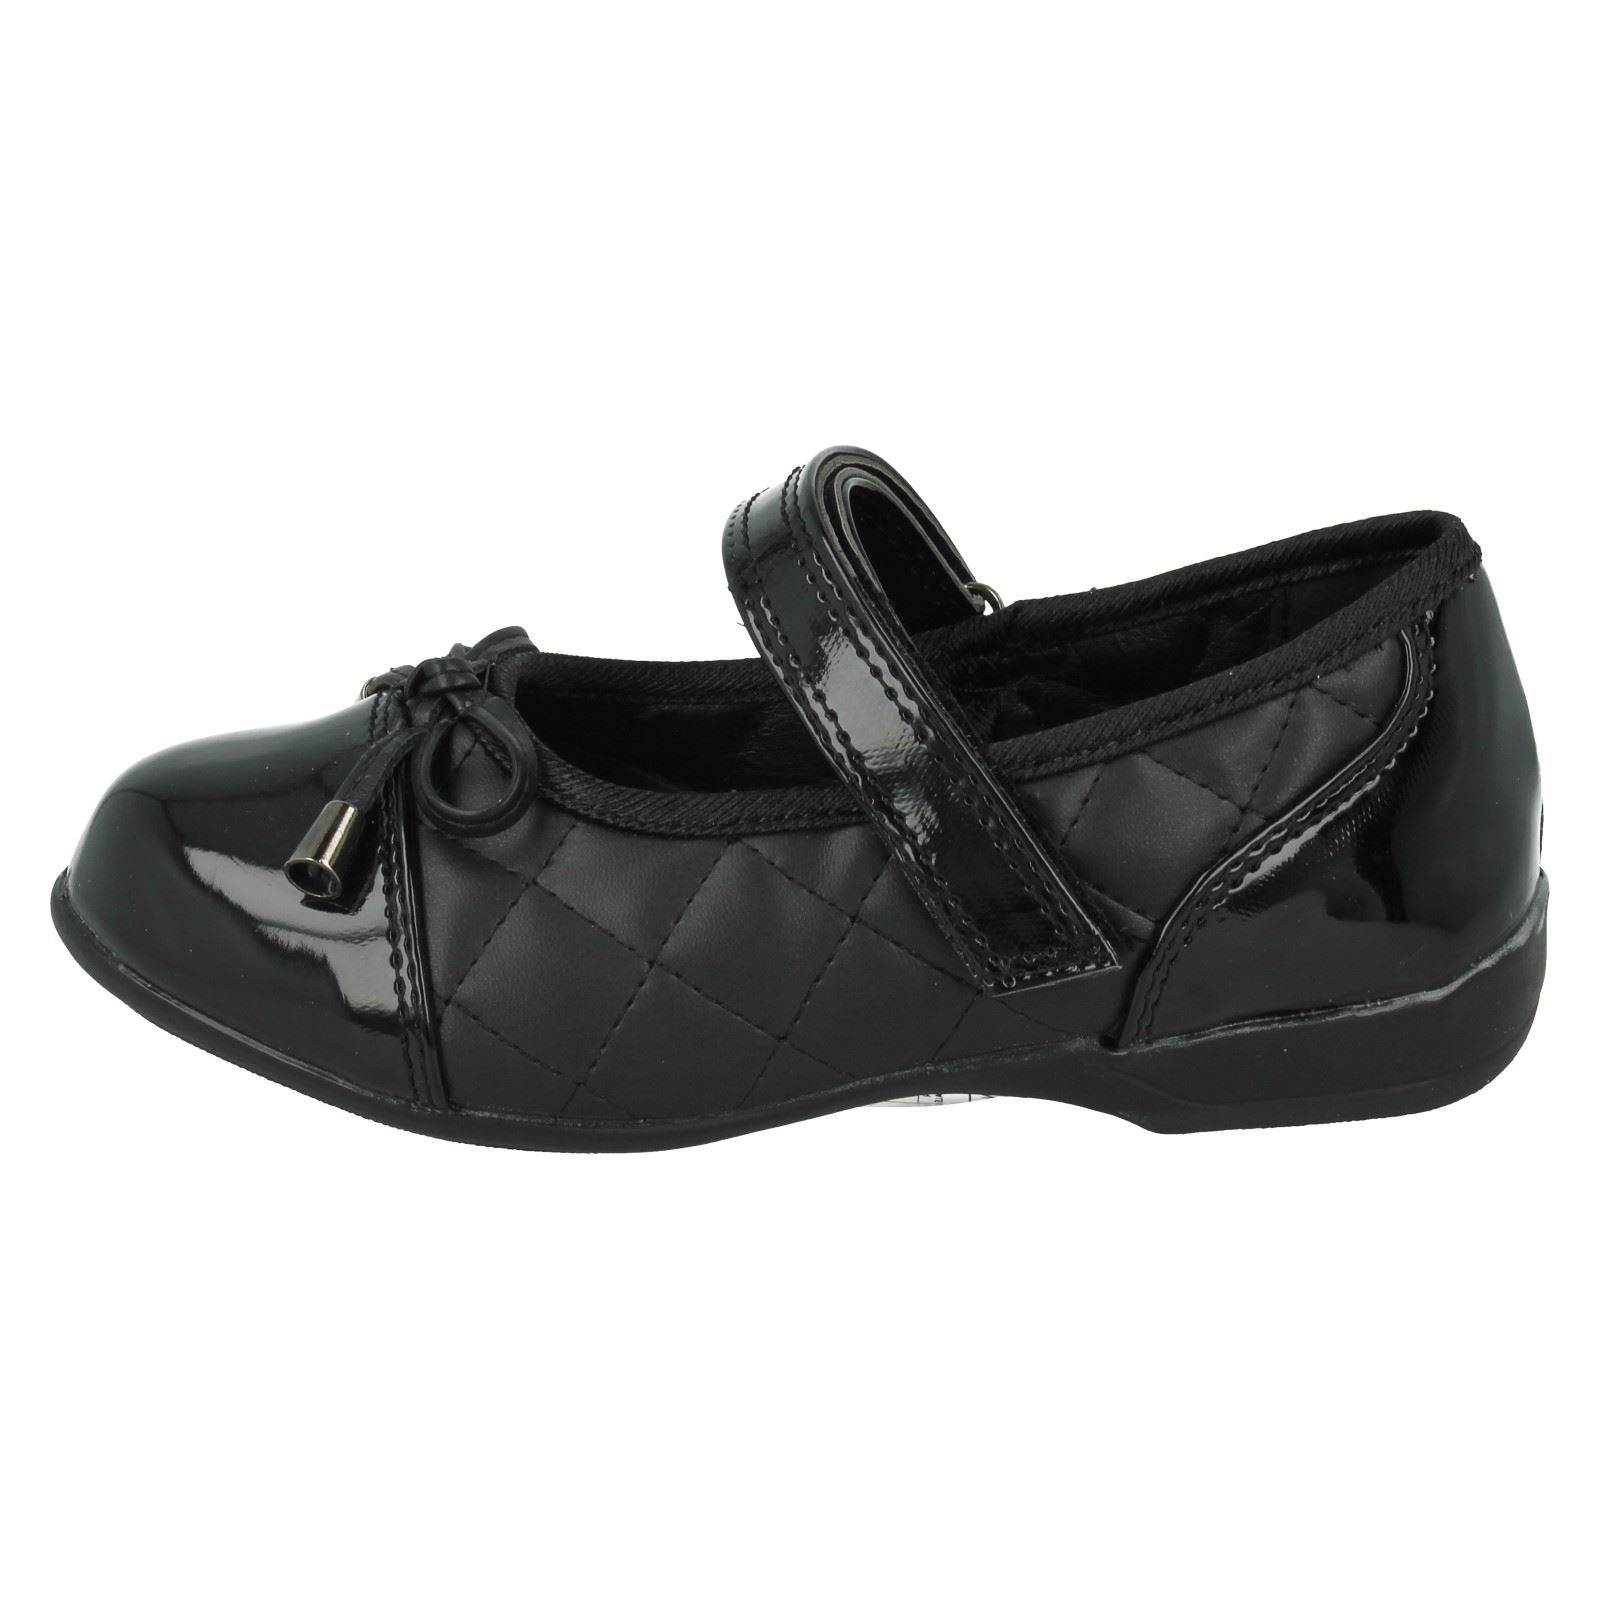 Girls Cool 4 School Shoes The Style - H2424